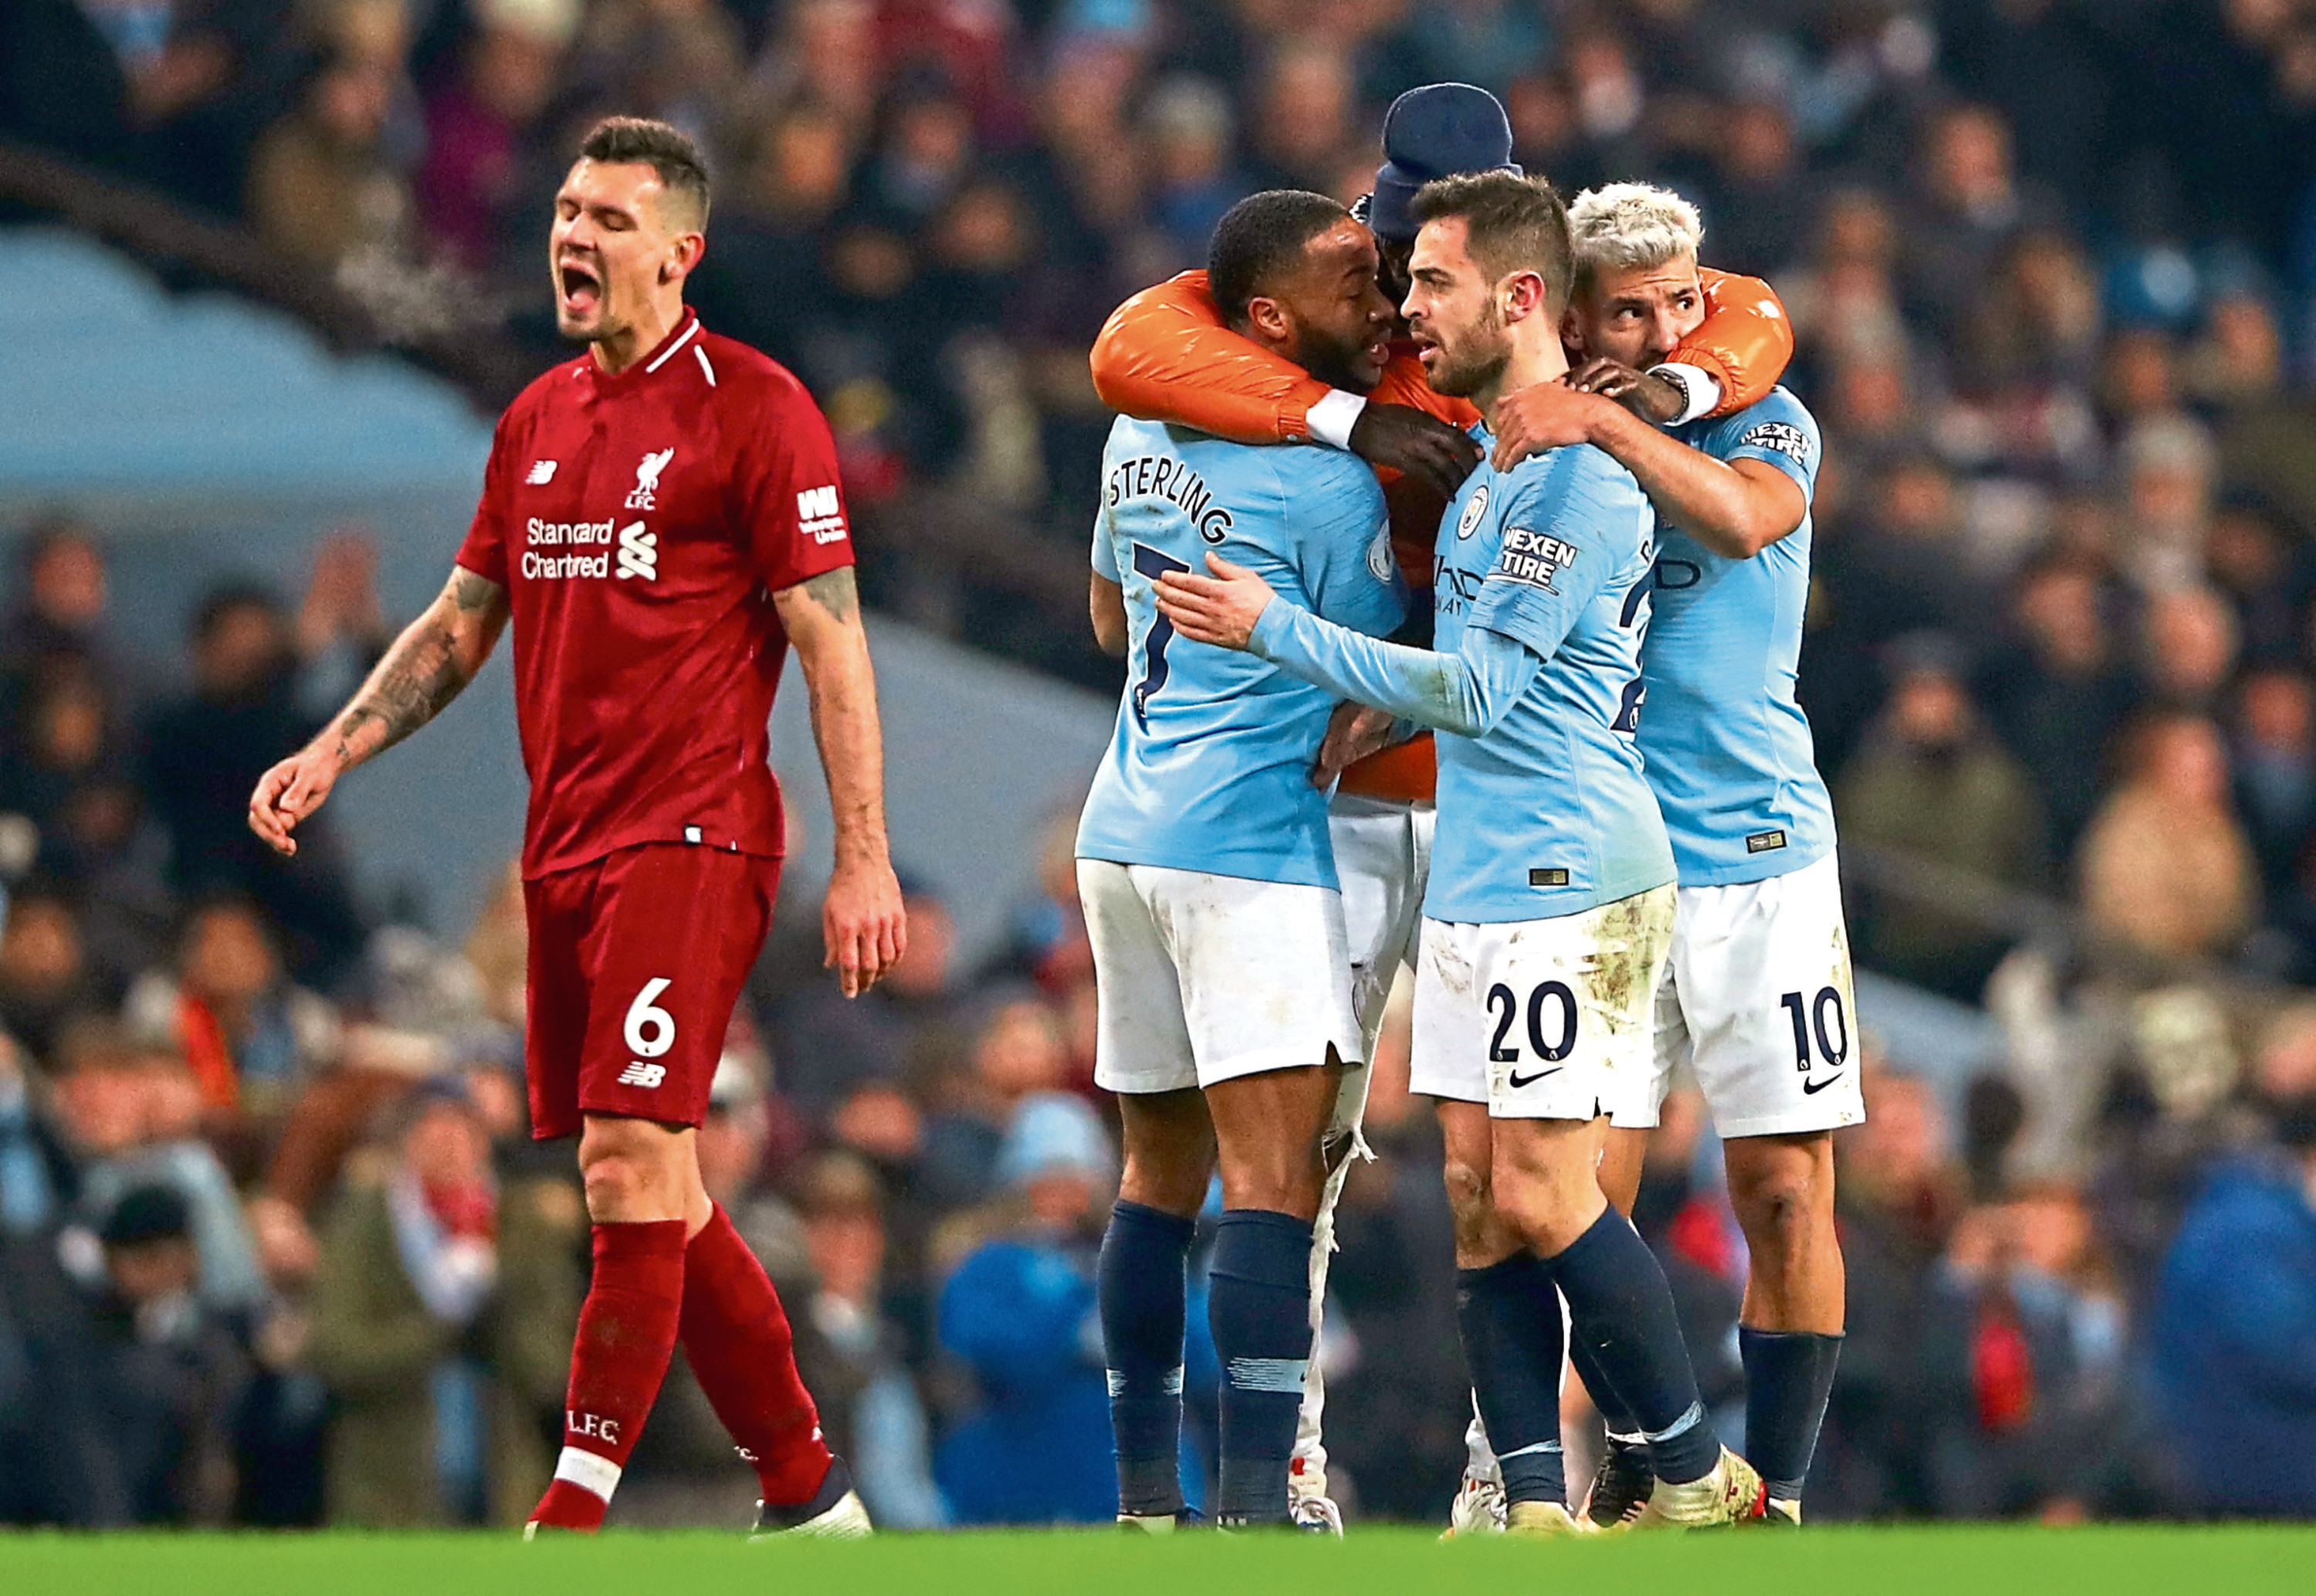 Manchester City's stars celebrate Thursday night's win as Liverpool's Dejan Lovren suffers (Photo by Clive Brunskill/Getty Images)